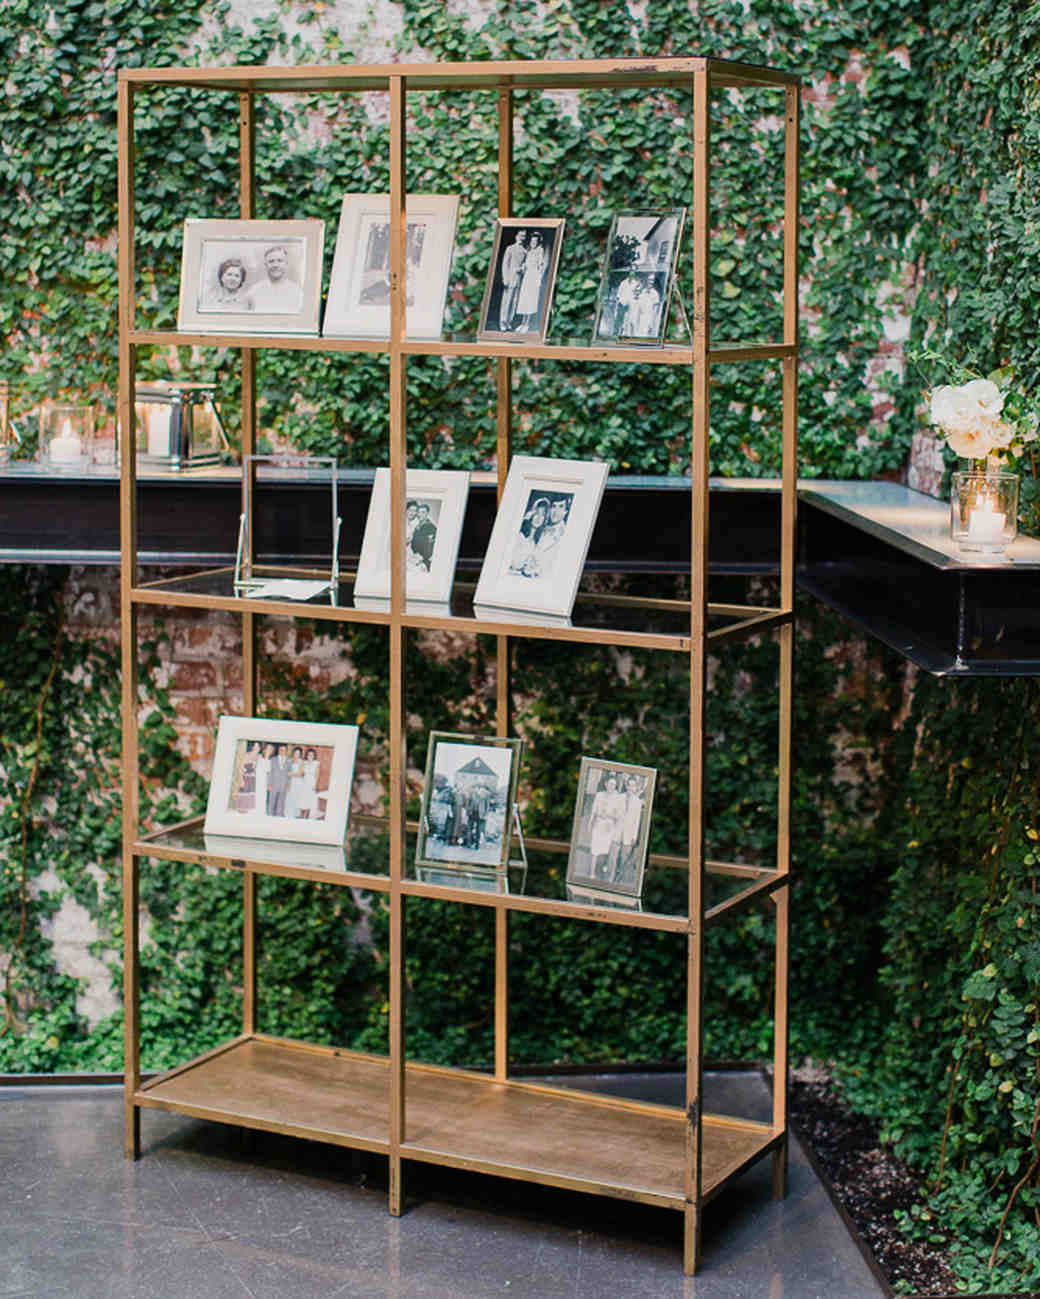 Family Picture Ideas For Wedding: 30 Creative Ways To Display Photos At Your Wedding